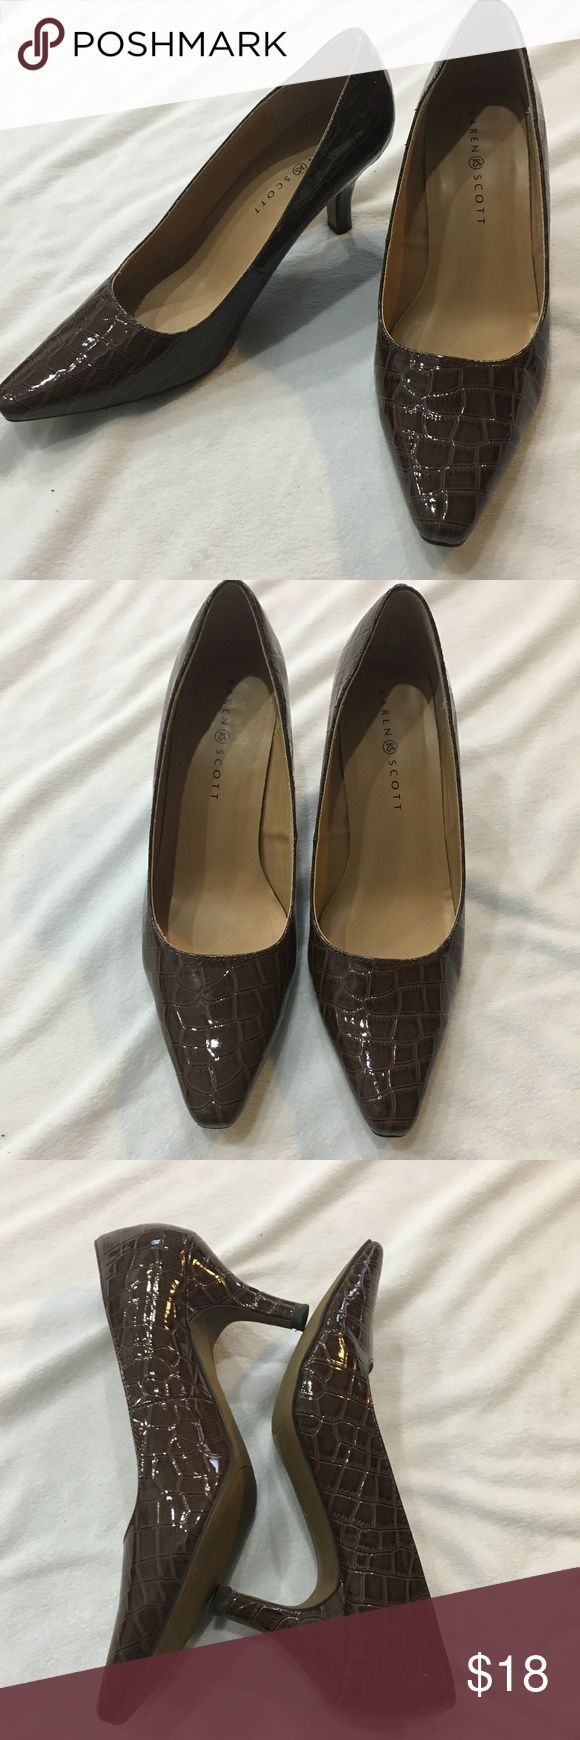 "Karen Scott Rich Brown Faux Crocodile Skin Heels Karen Scott Rich Brown Faux Crocodile Skin Heels  Rich Chocolate Brown faux crocodile skin texture. Heel measures approximately 3"". Practically new - excellent condition! Toe of shoe is slightly squared off - not completely pointed (see picture). Excellent for work!  Would look great with brown pants or skirt. Karen Scott Shoes Heels"